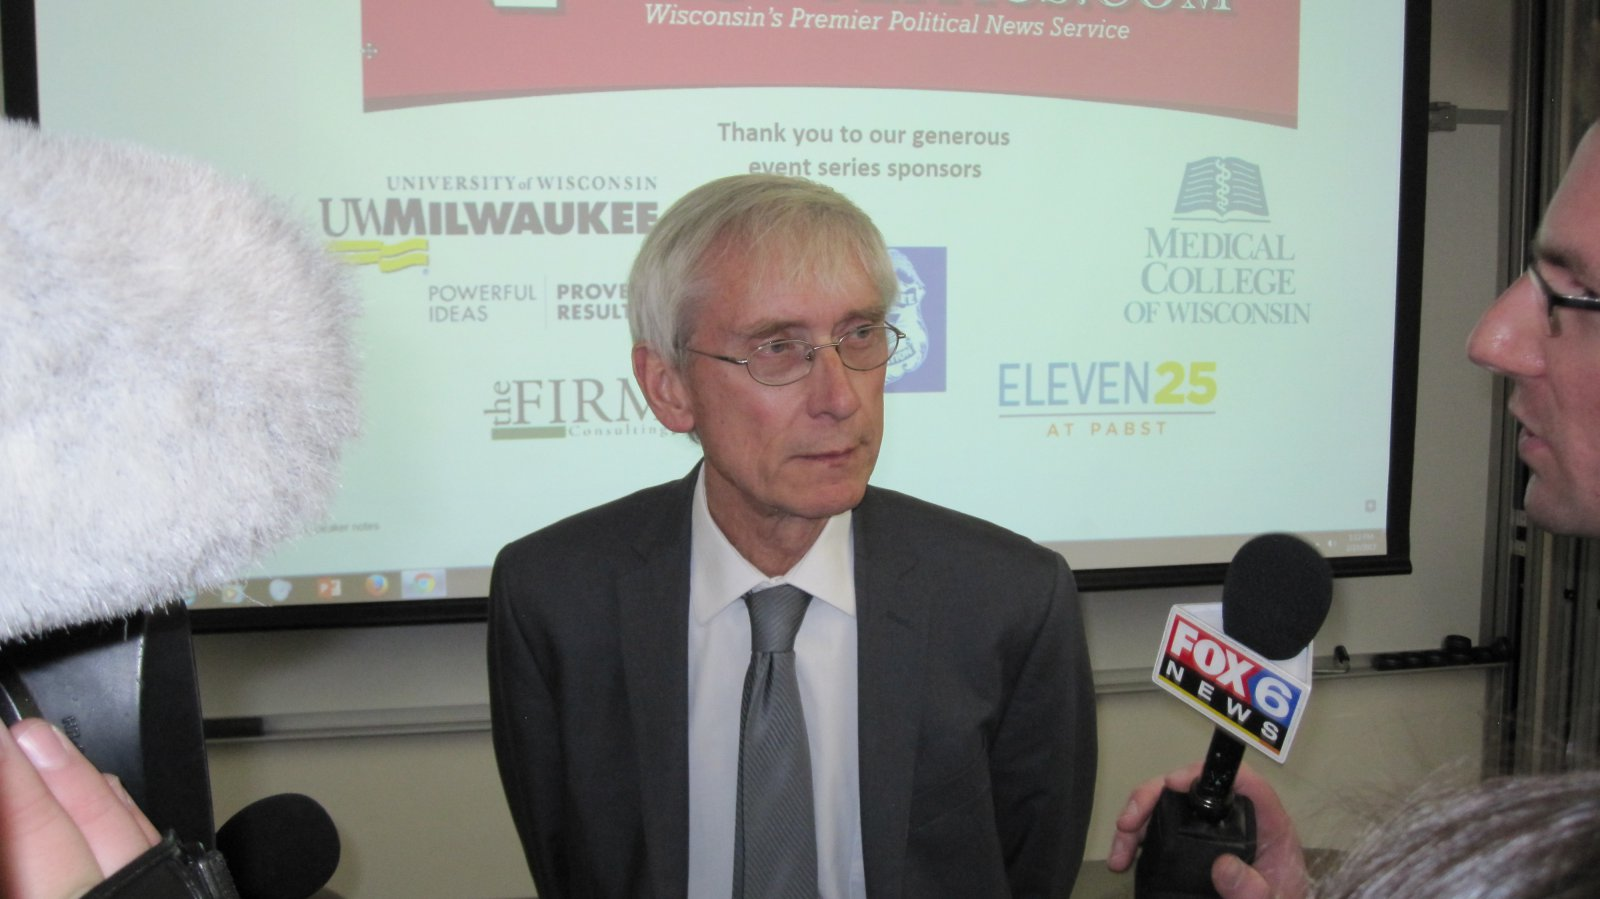 ICYMI: New Poll Shows Tony Evers Up 5 Over Scott Walker